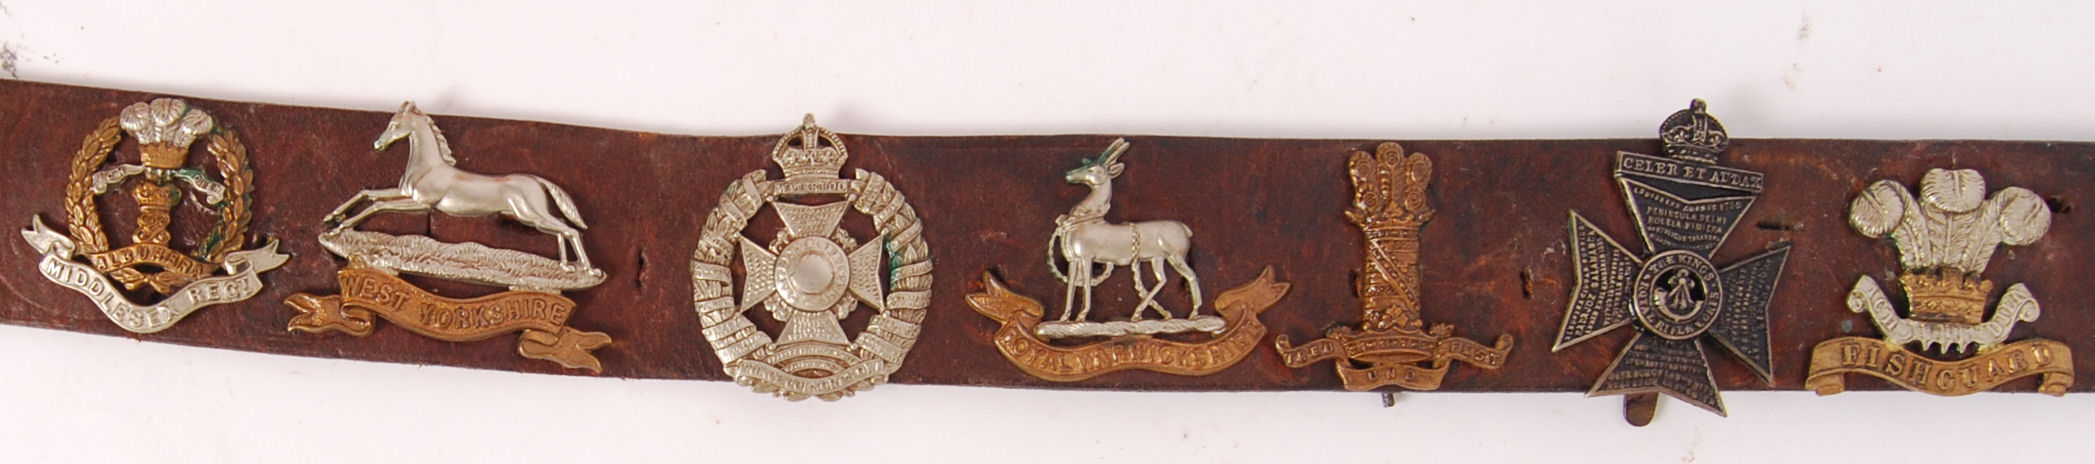 Lot 224 - WWI BADGES